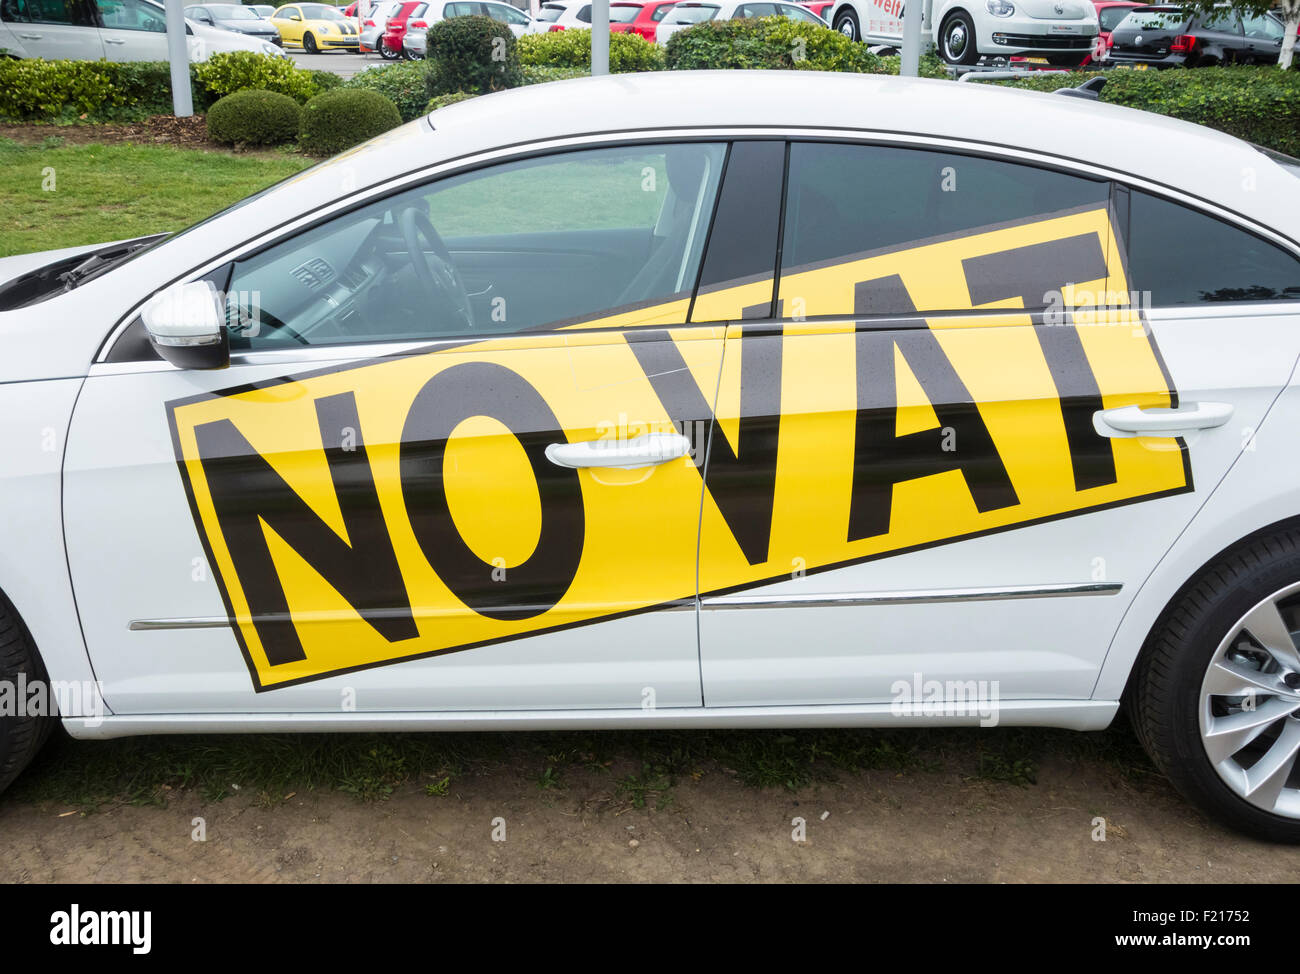 Car outside VW dealership. UK - Stock Image